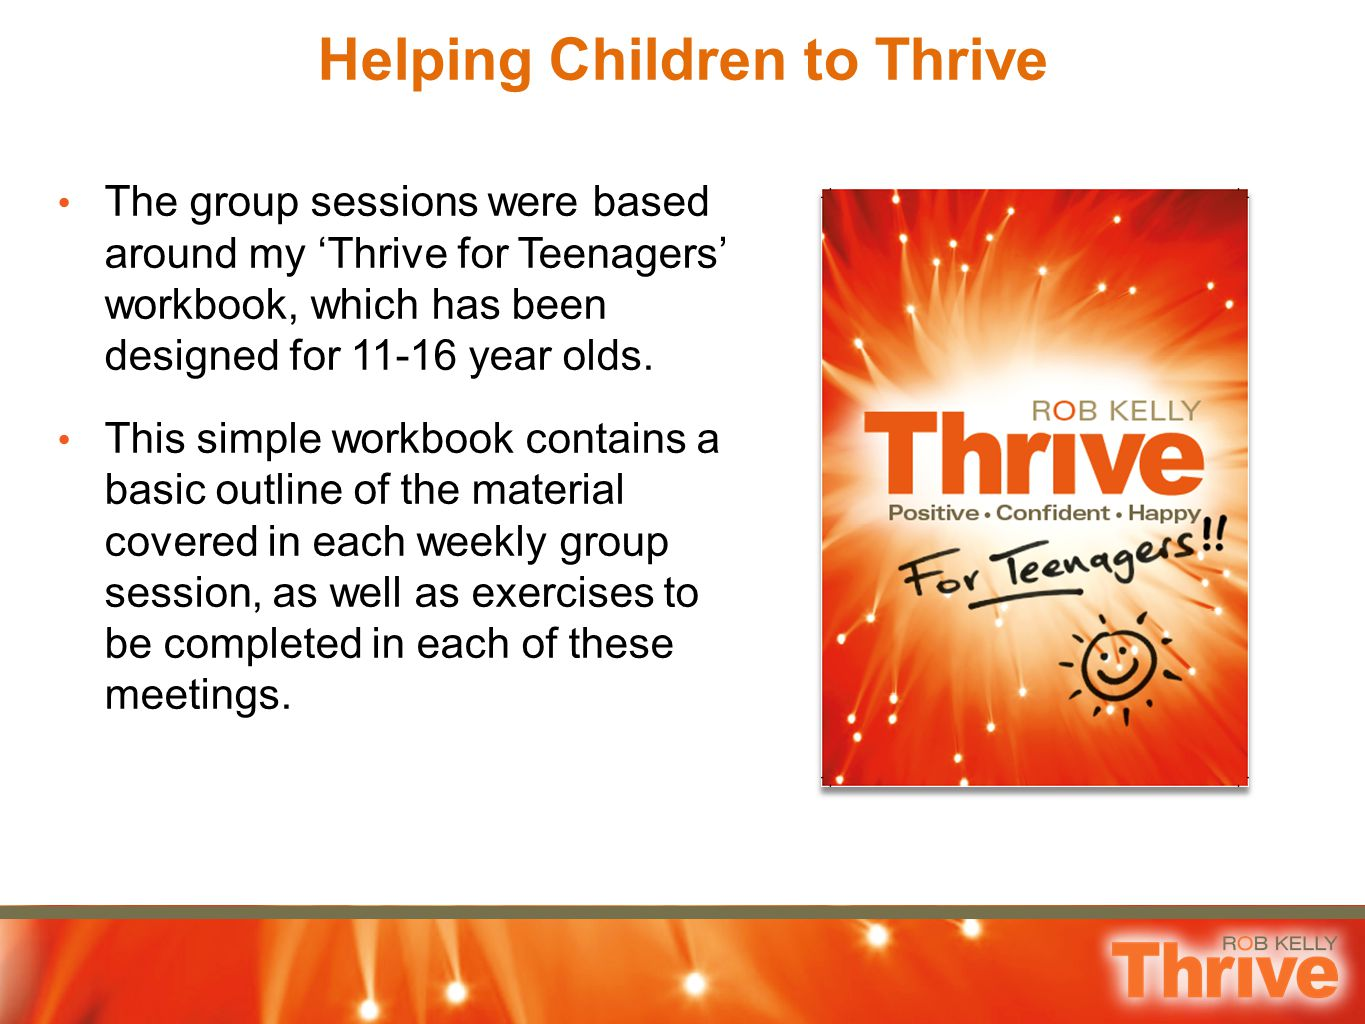 Helping Children to Thrive The group sessions were based around my 'Thrive for Teenagers' workbook, which has been designed for 11-16 year olds. This